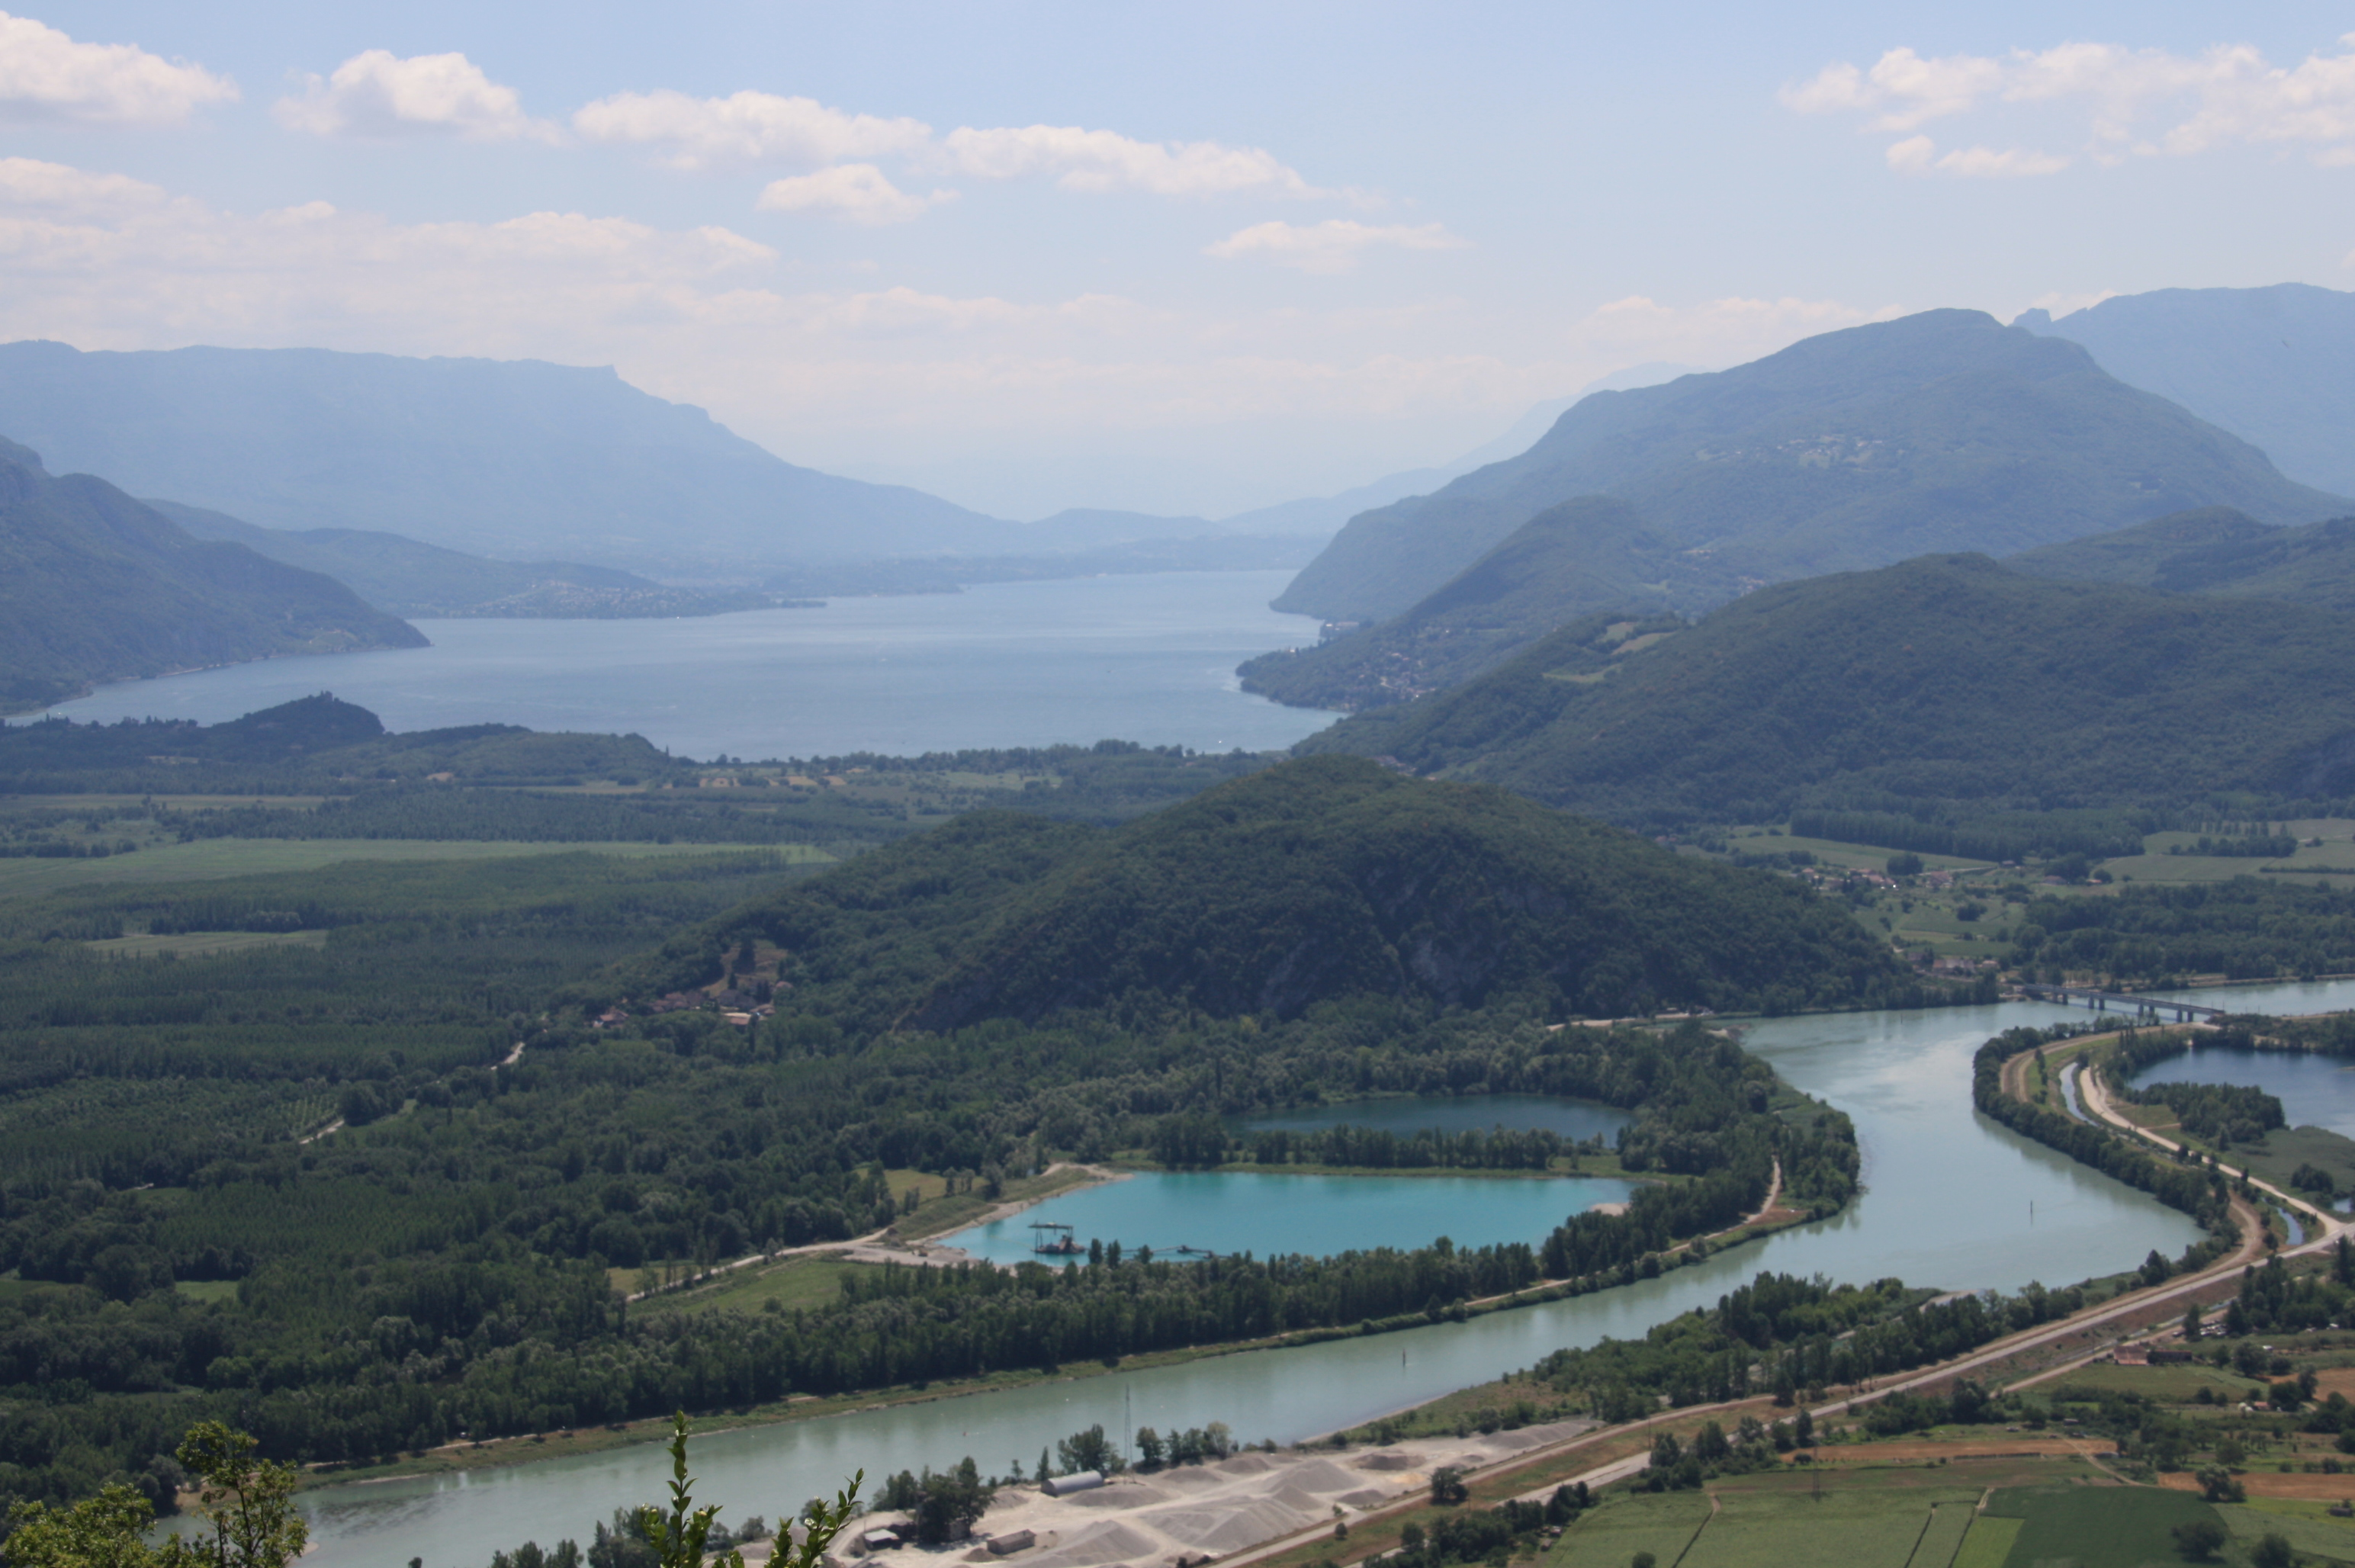 http://upload.wikimedia.org/wikipedia/commons/3/30/Vue_lac_bourget_colombier_1007.jpg